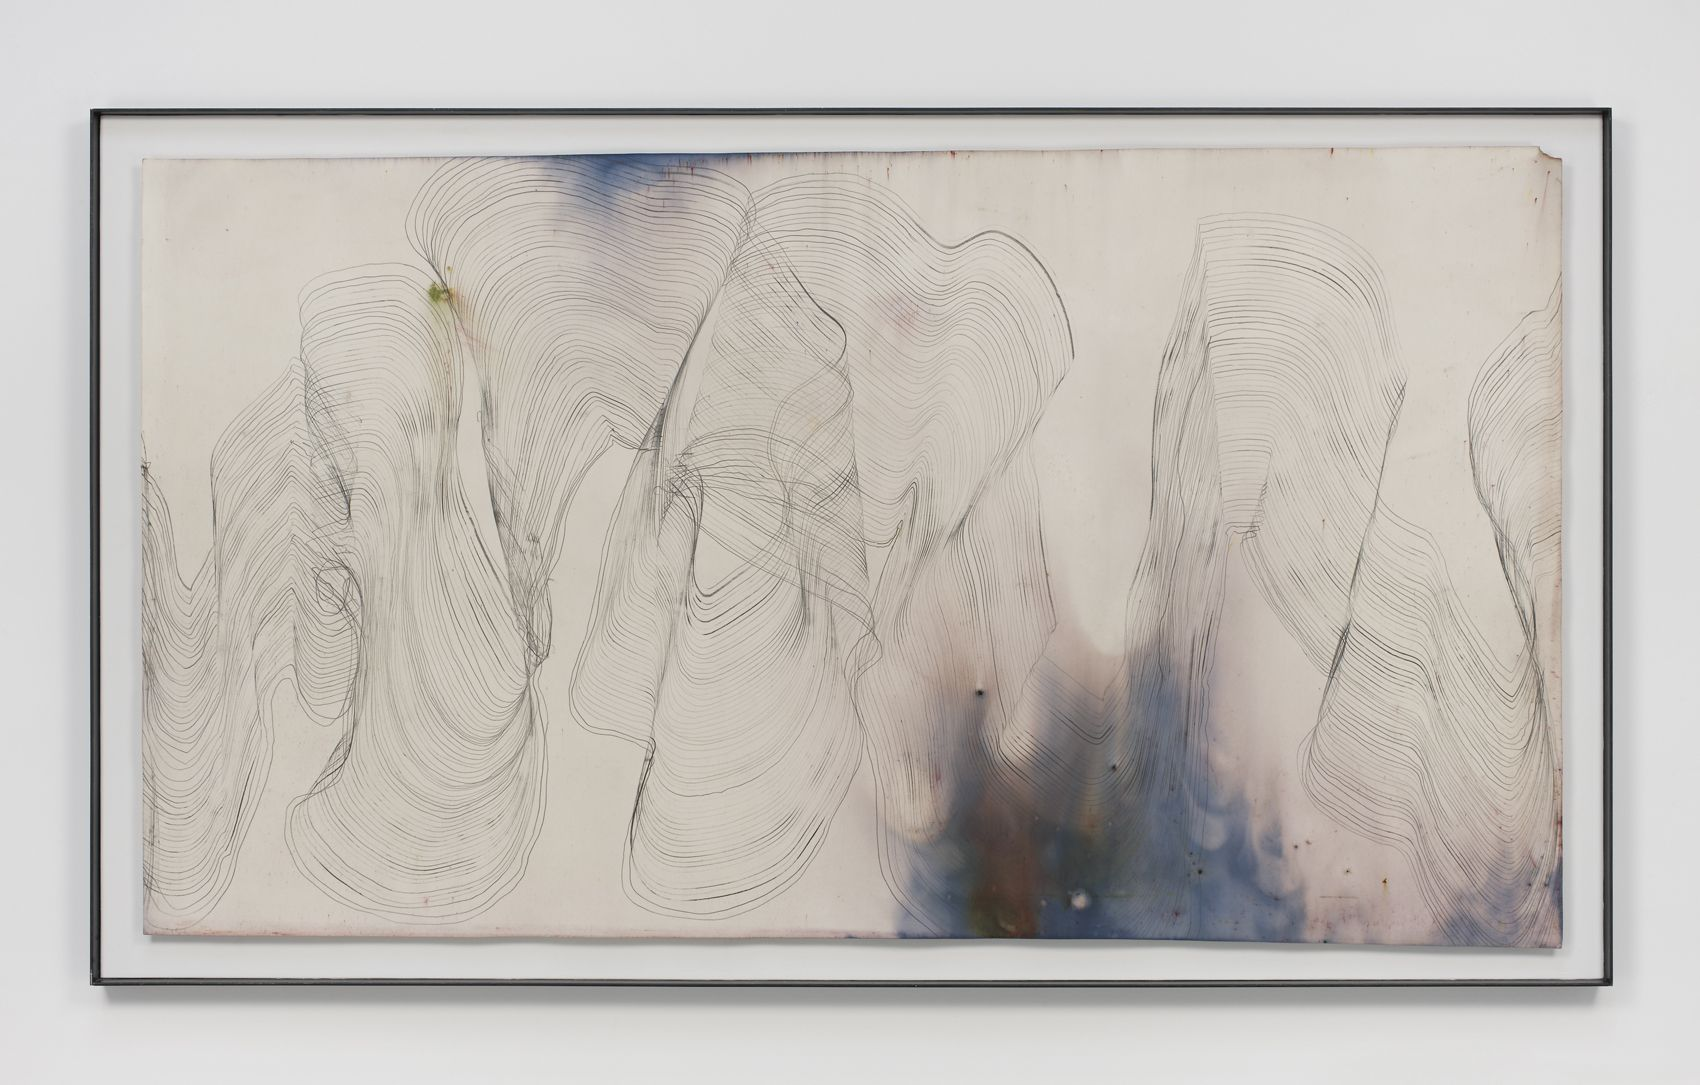 Music for Minor Planets (Spinoza), 2013, Graphite and pigment on dyed and bleached paper